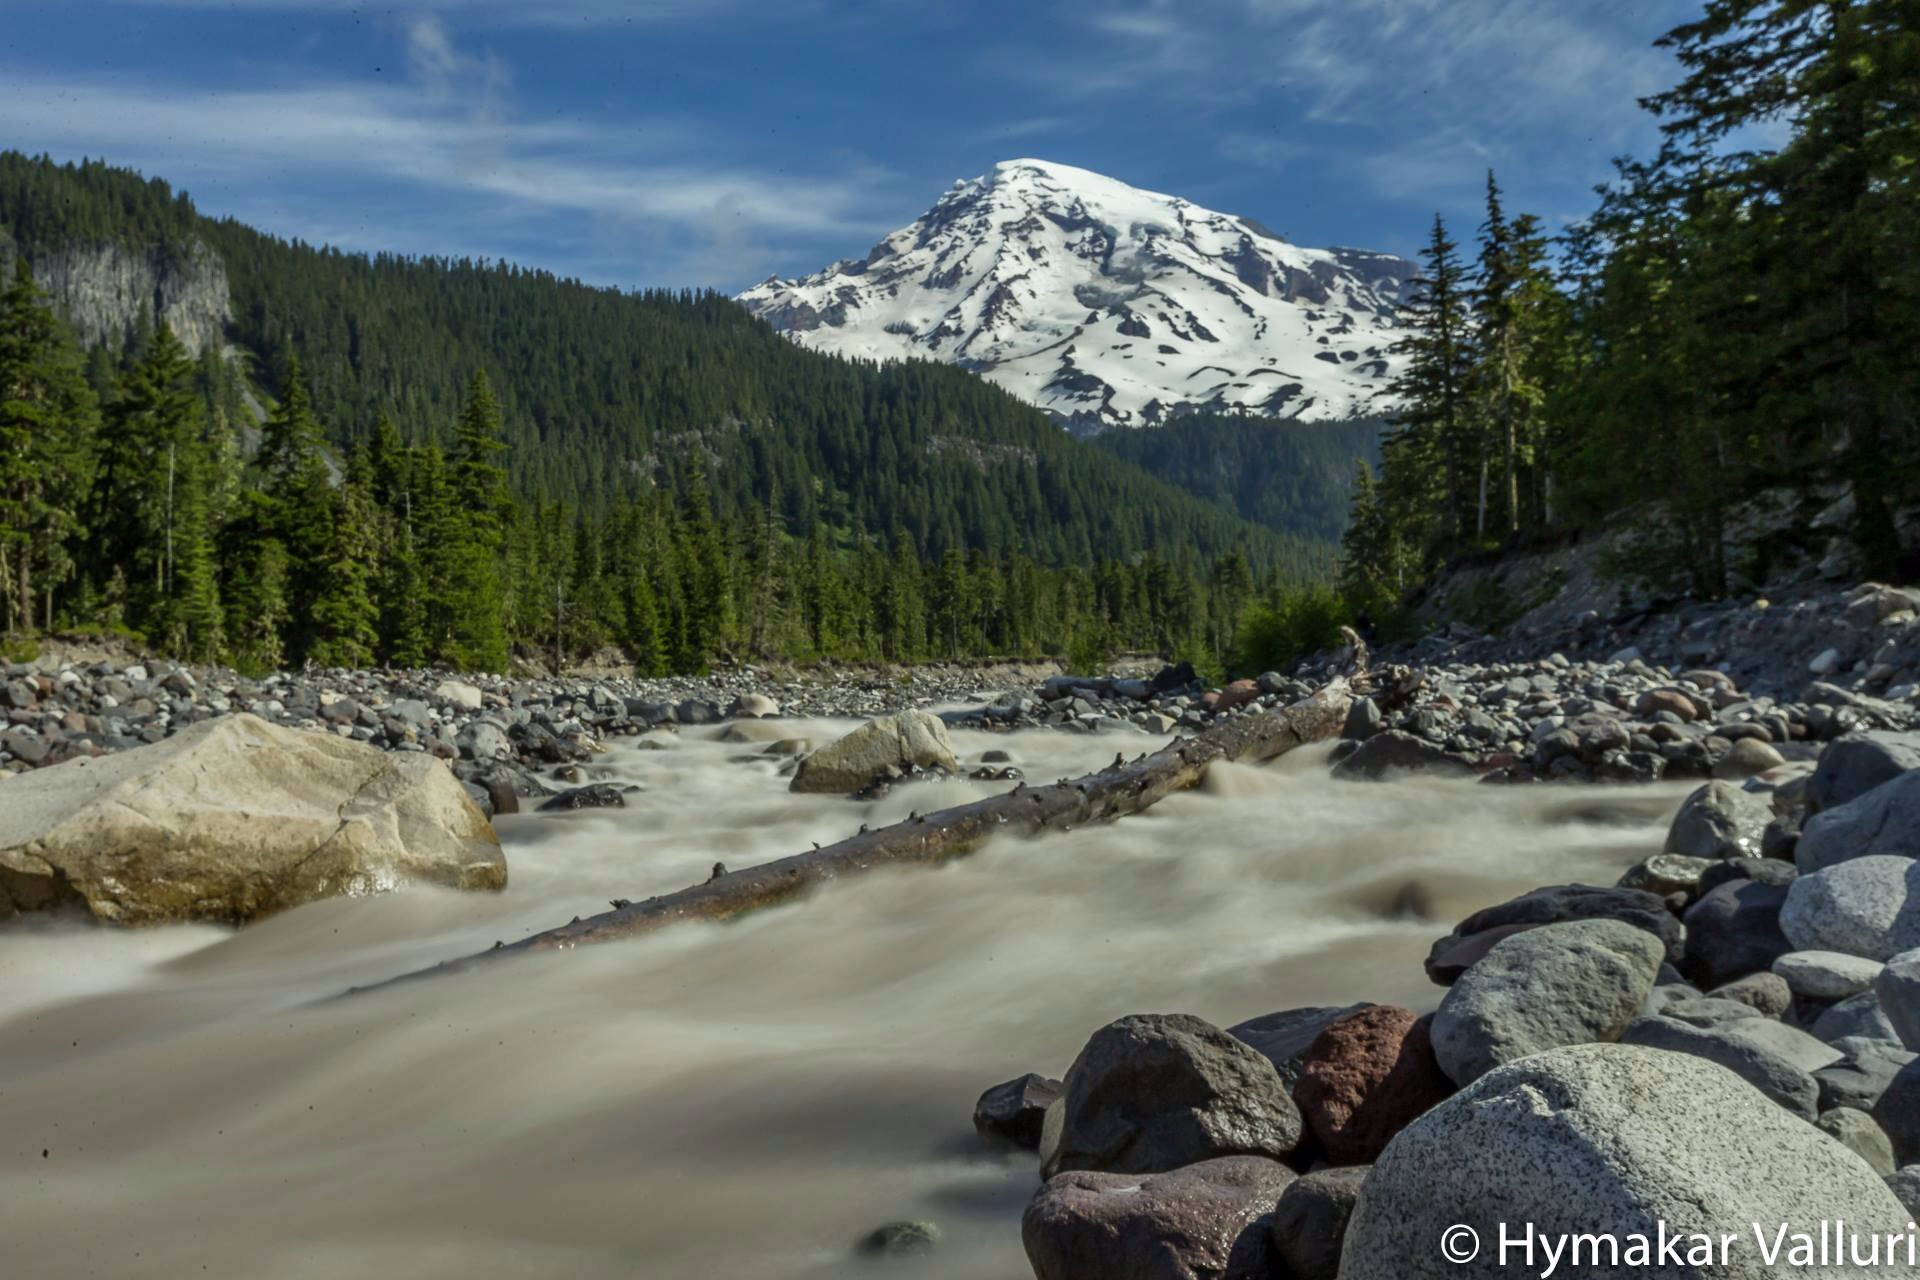 Streams from waters melted from Glaciers in Mount Rainier